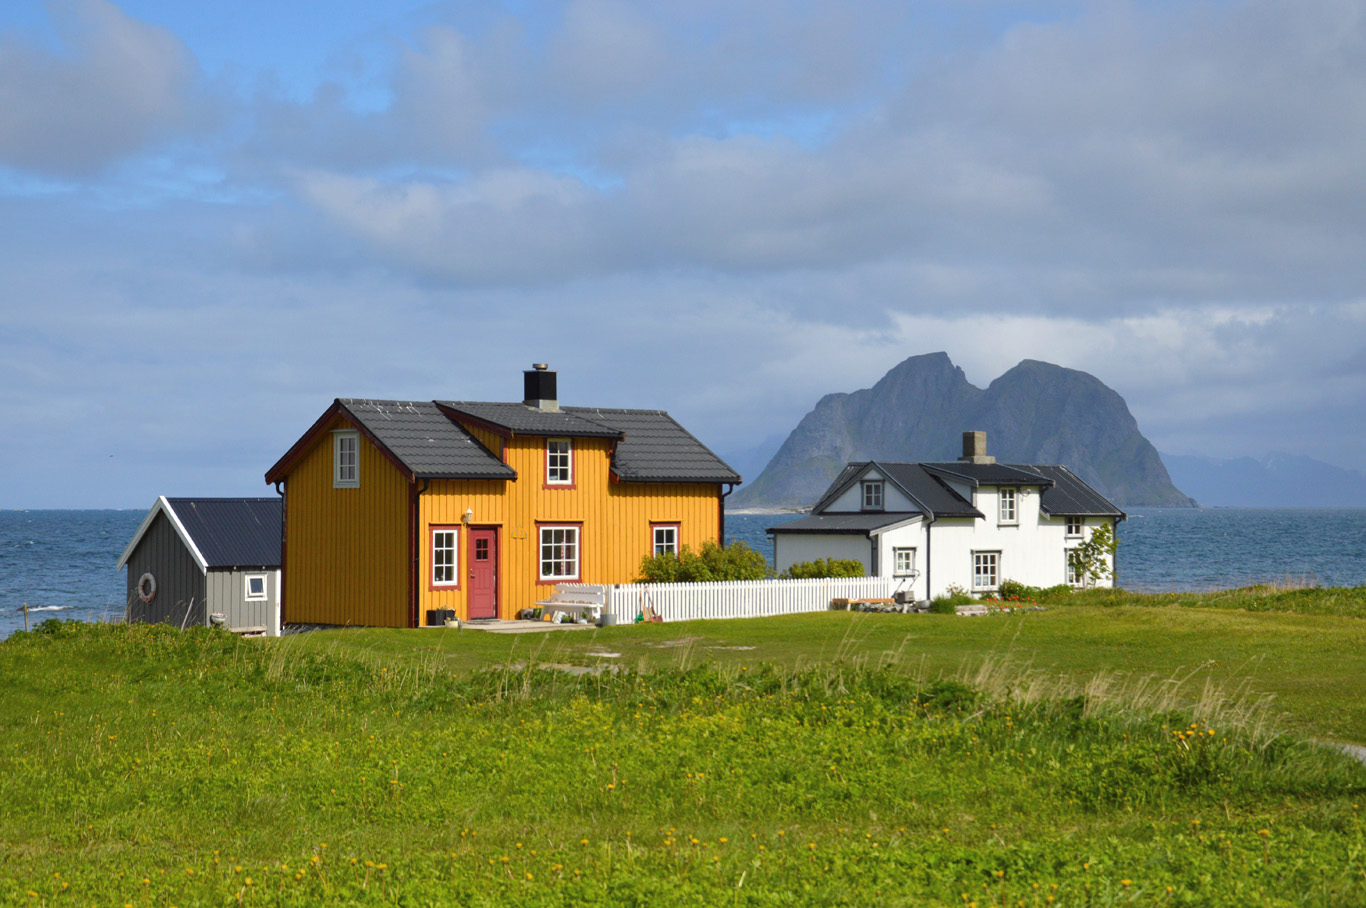 Houses in Nordland